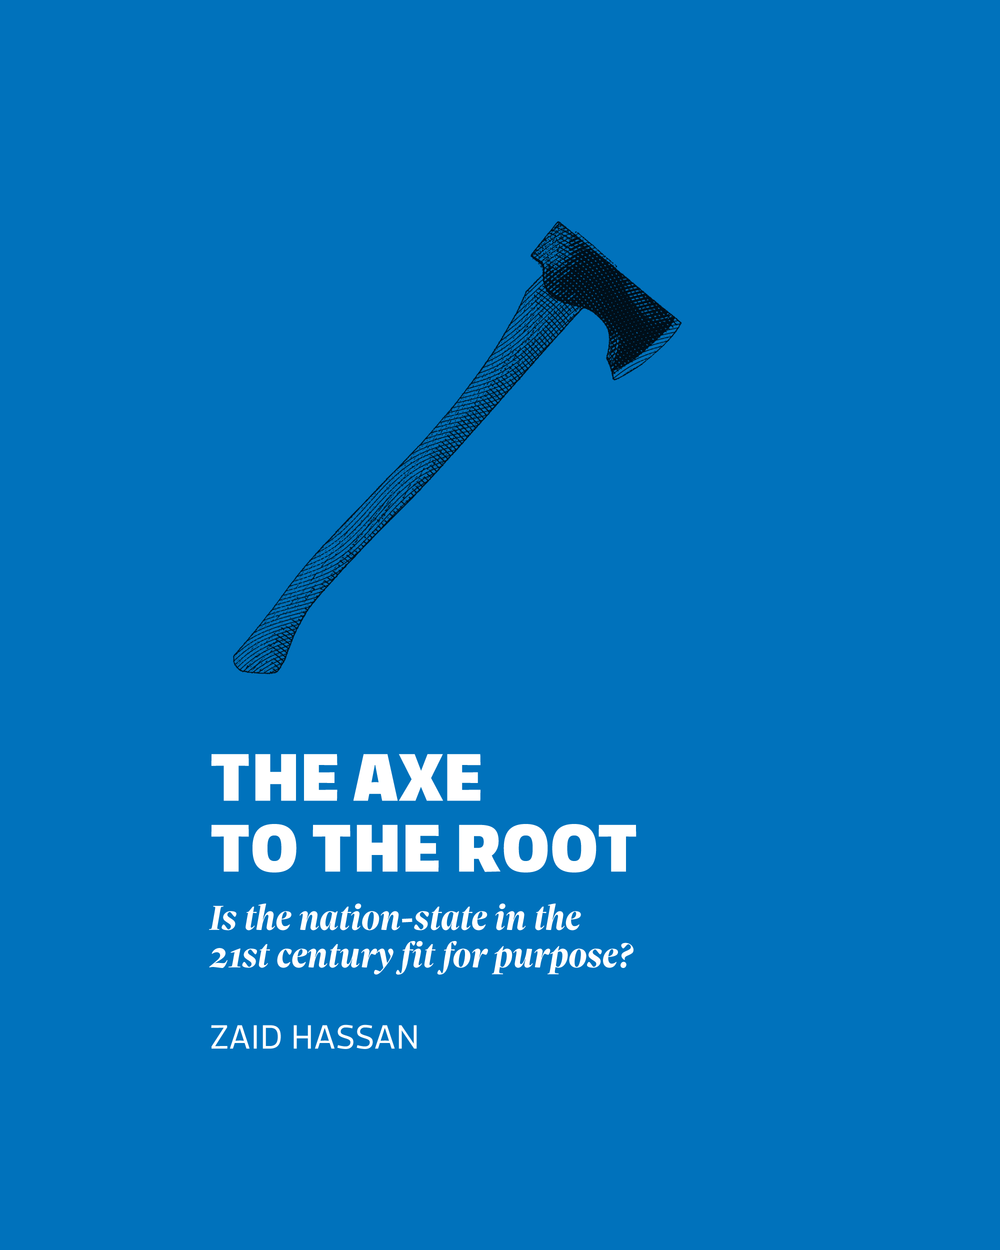 the axe to the root | 'paradigm shakers' essay